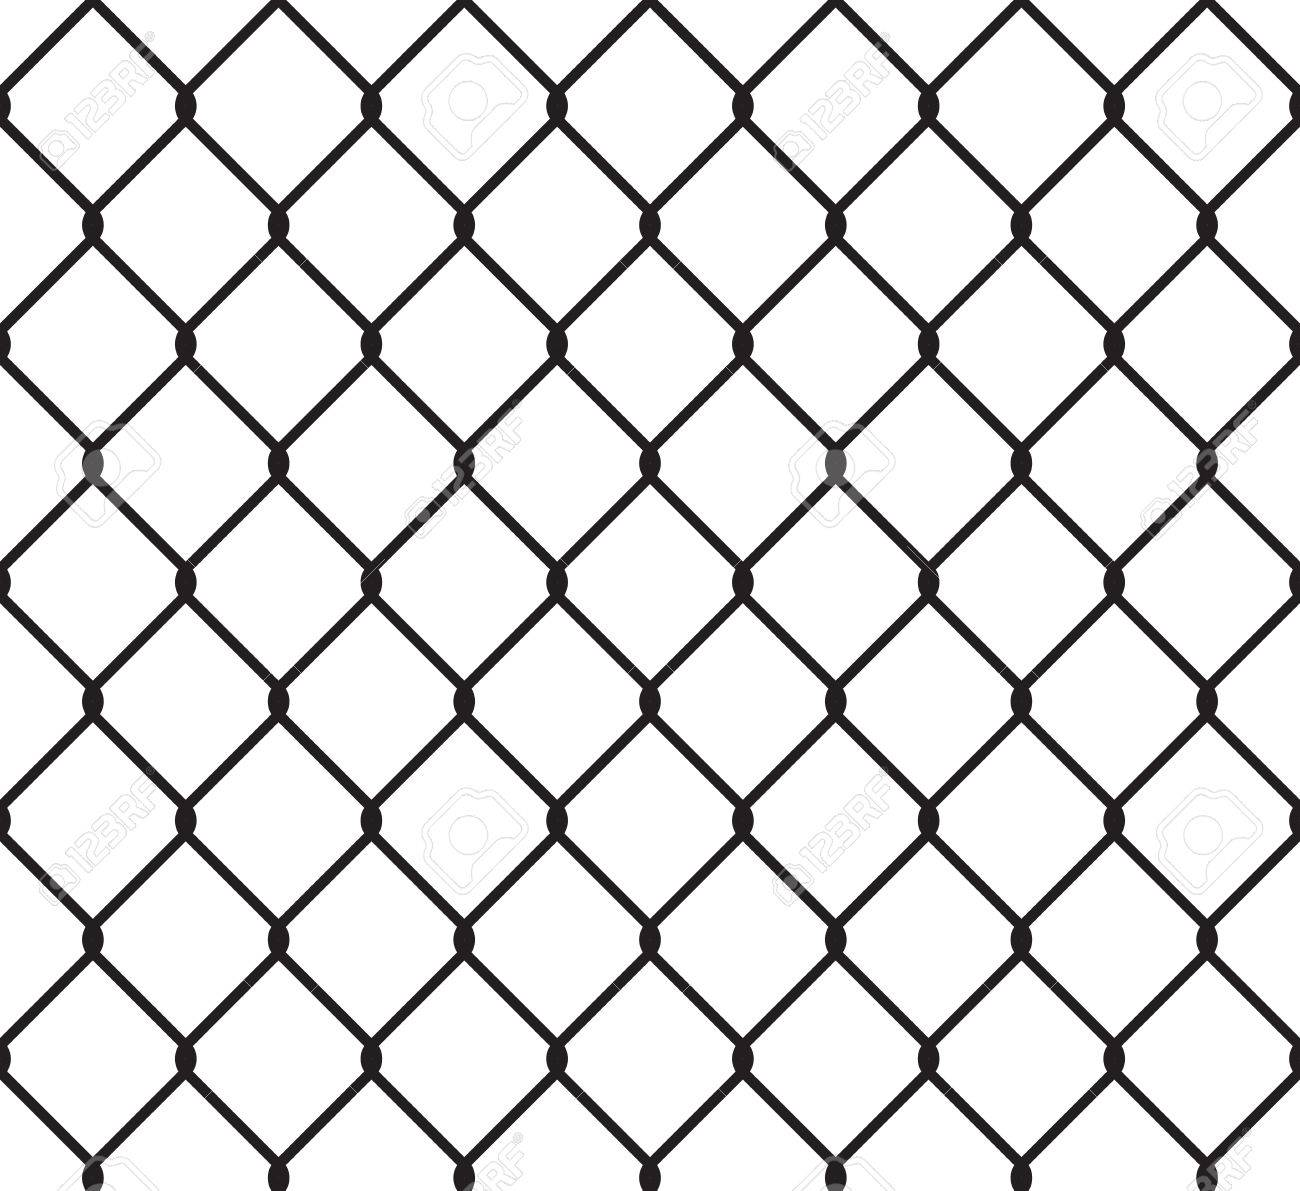 Metallic Wired Fence Seamless Pattern. Steel Wire Mesh Isolated ...